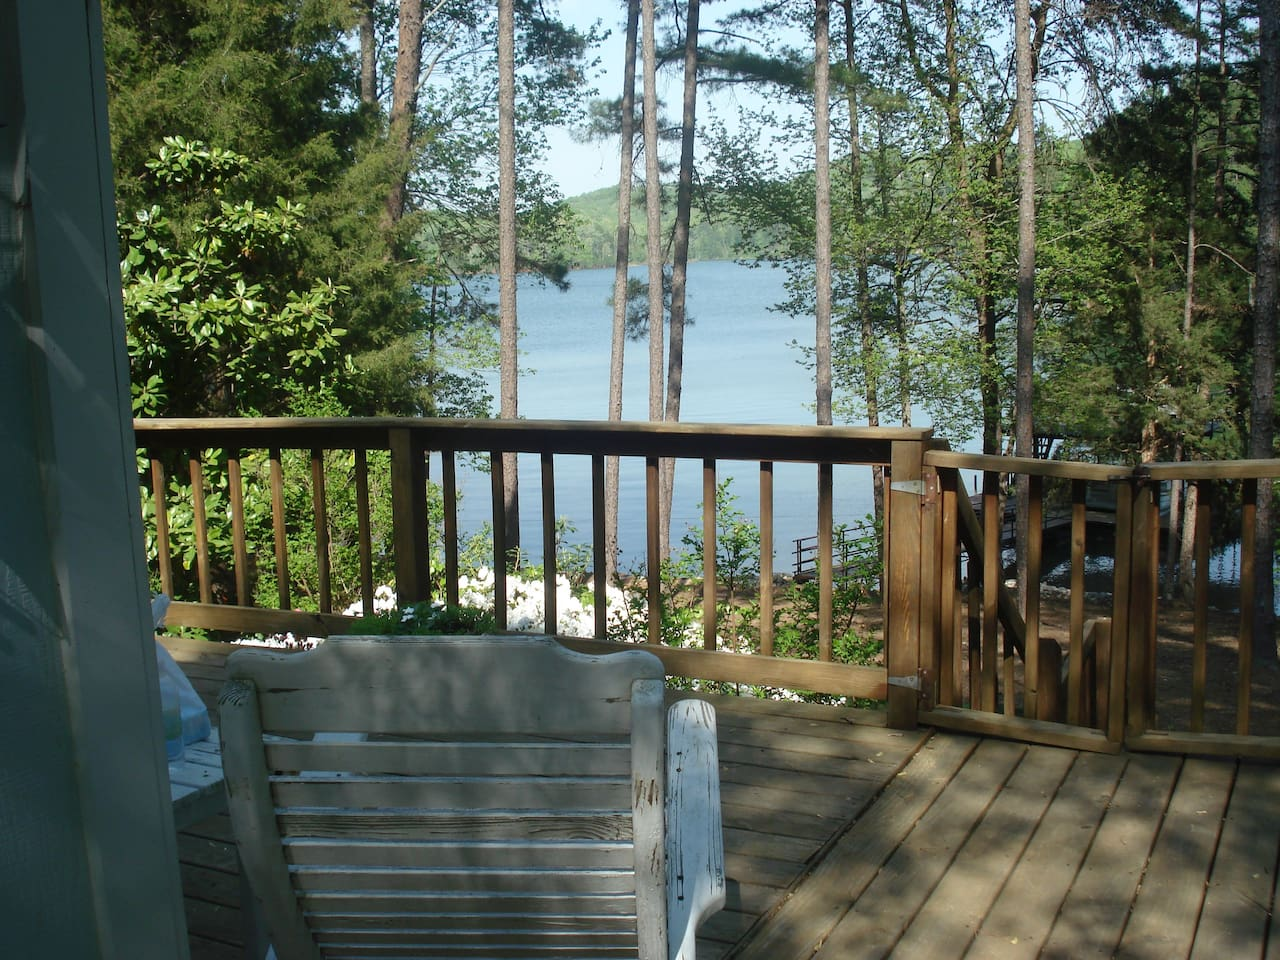 image cabin on georgia rentals lake hartwell bed hotels ha resorts in yards and from area property peaceful conservation home the s deal beach luxury cabins